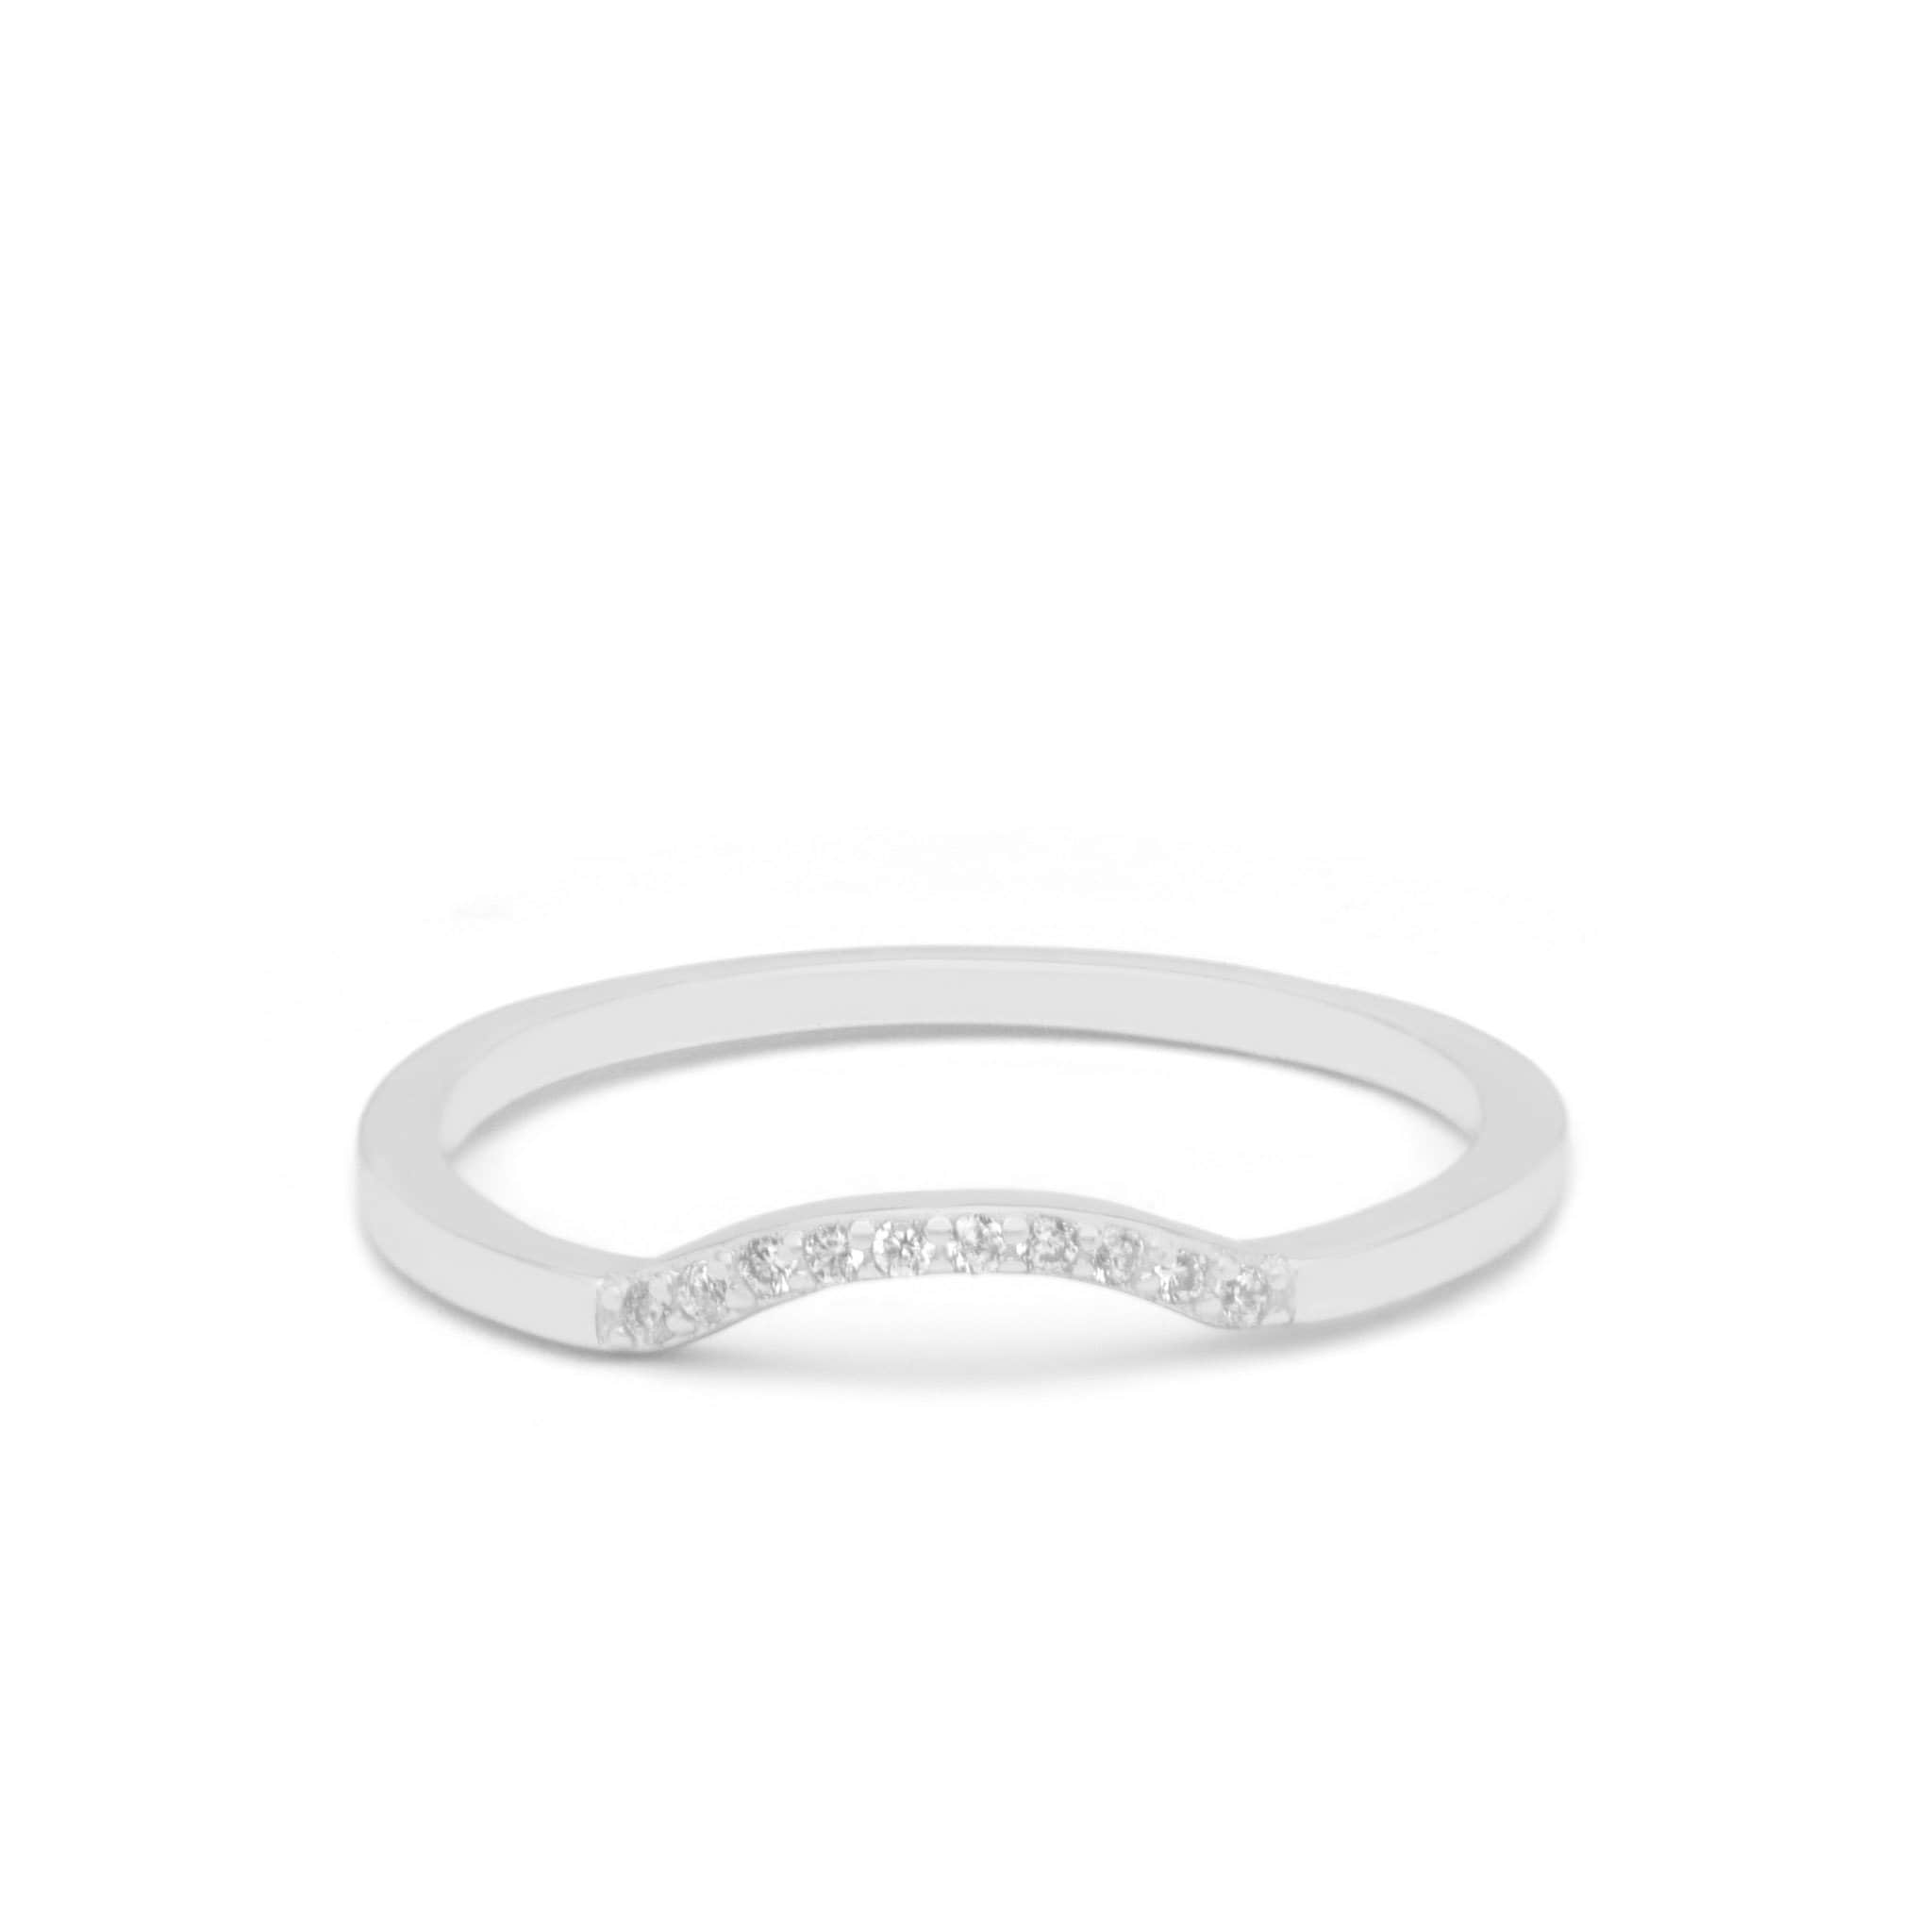 Jeanne's Jewels Rings White Gold / 5 Hadley